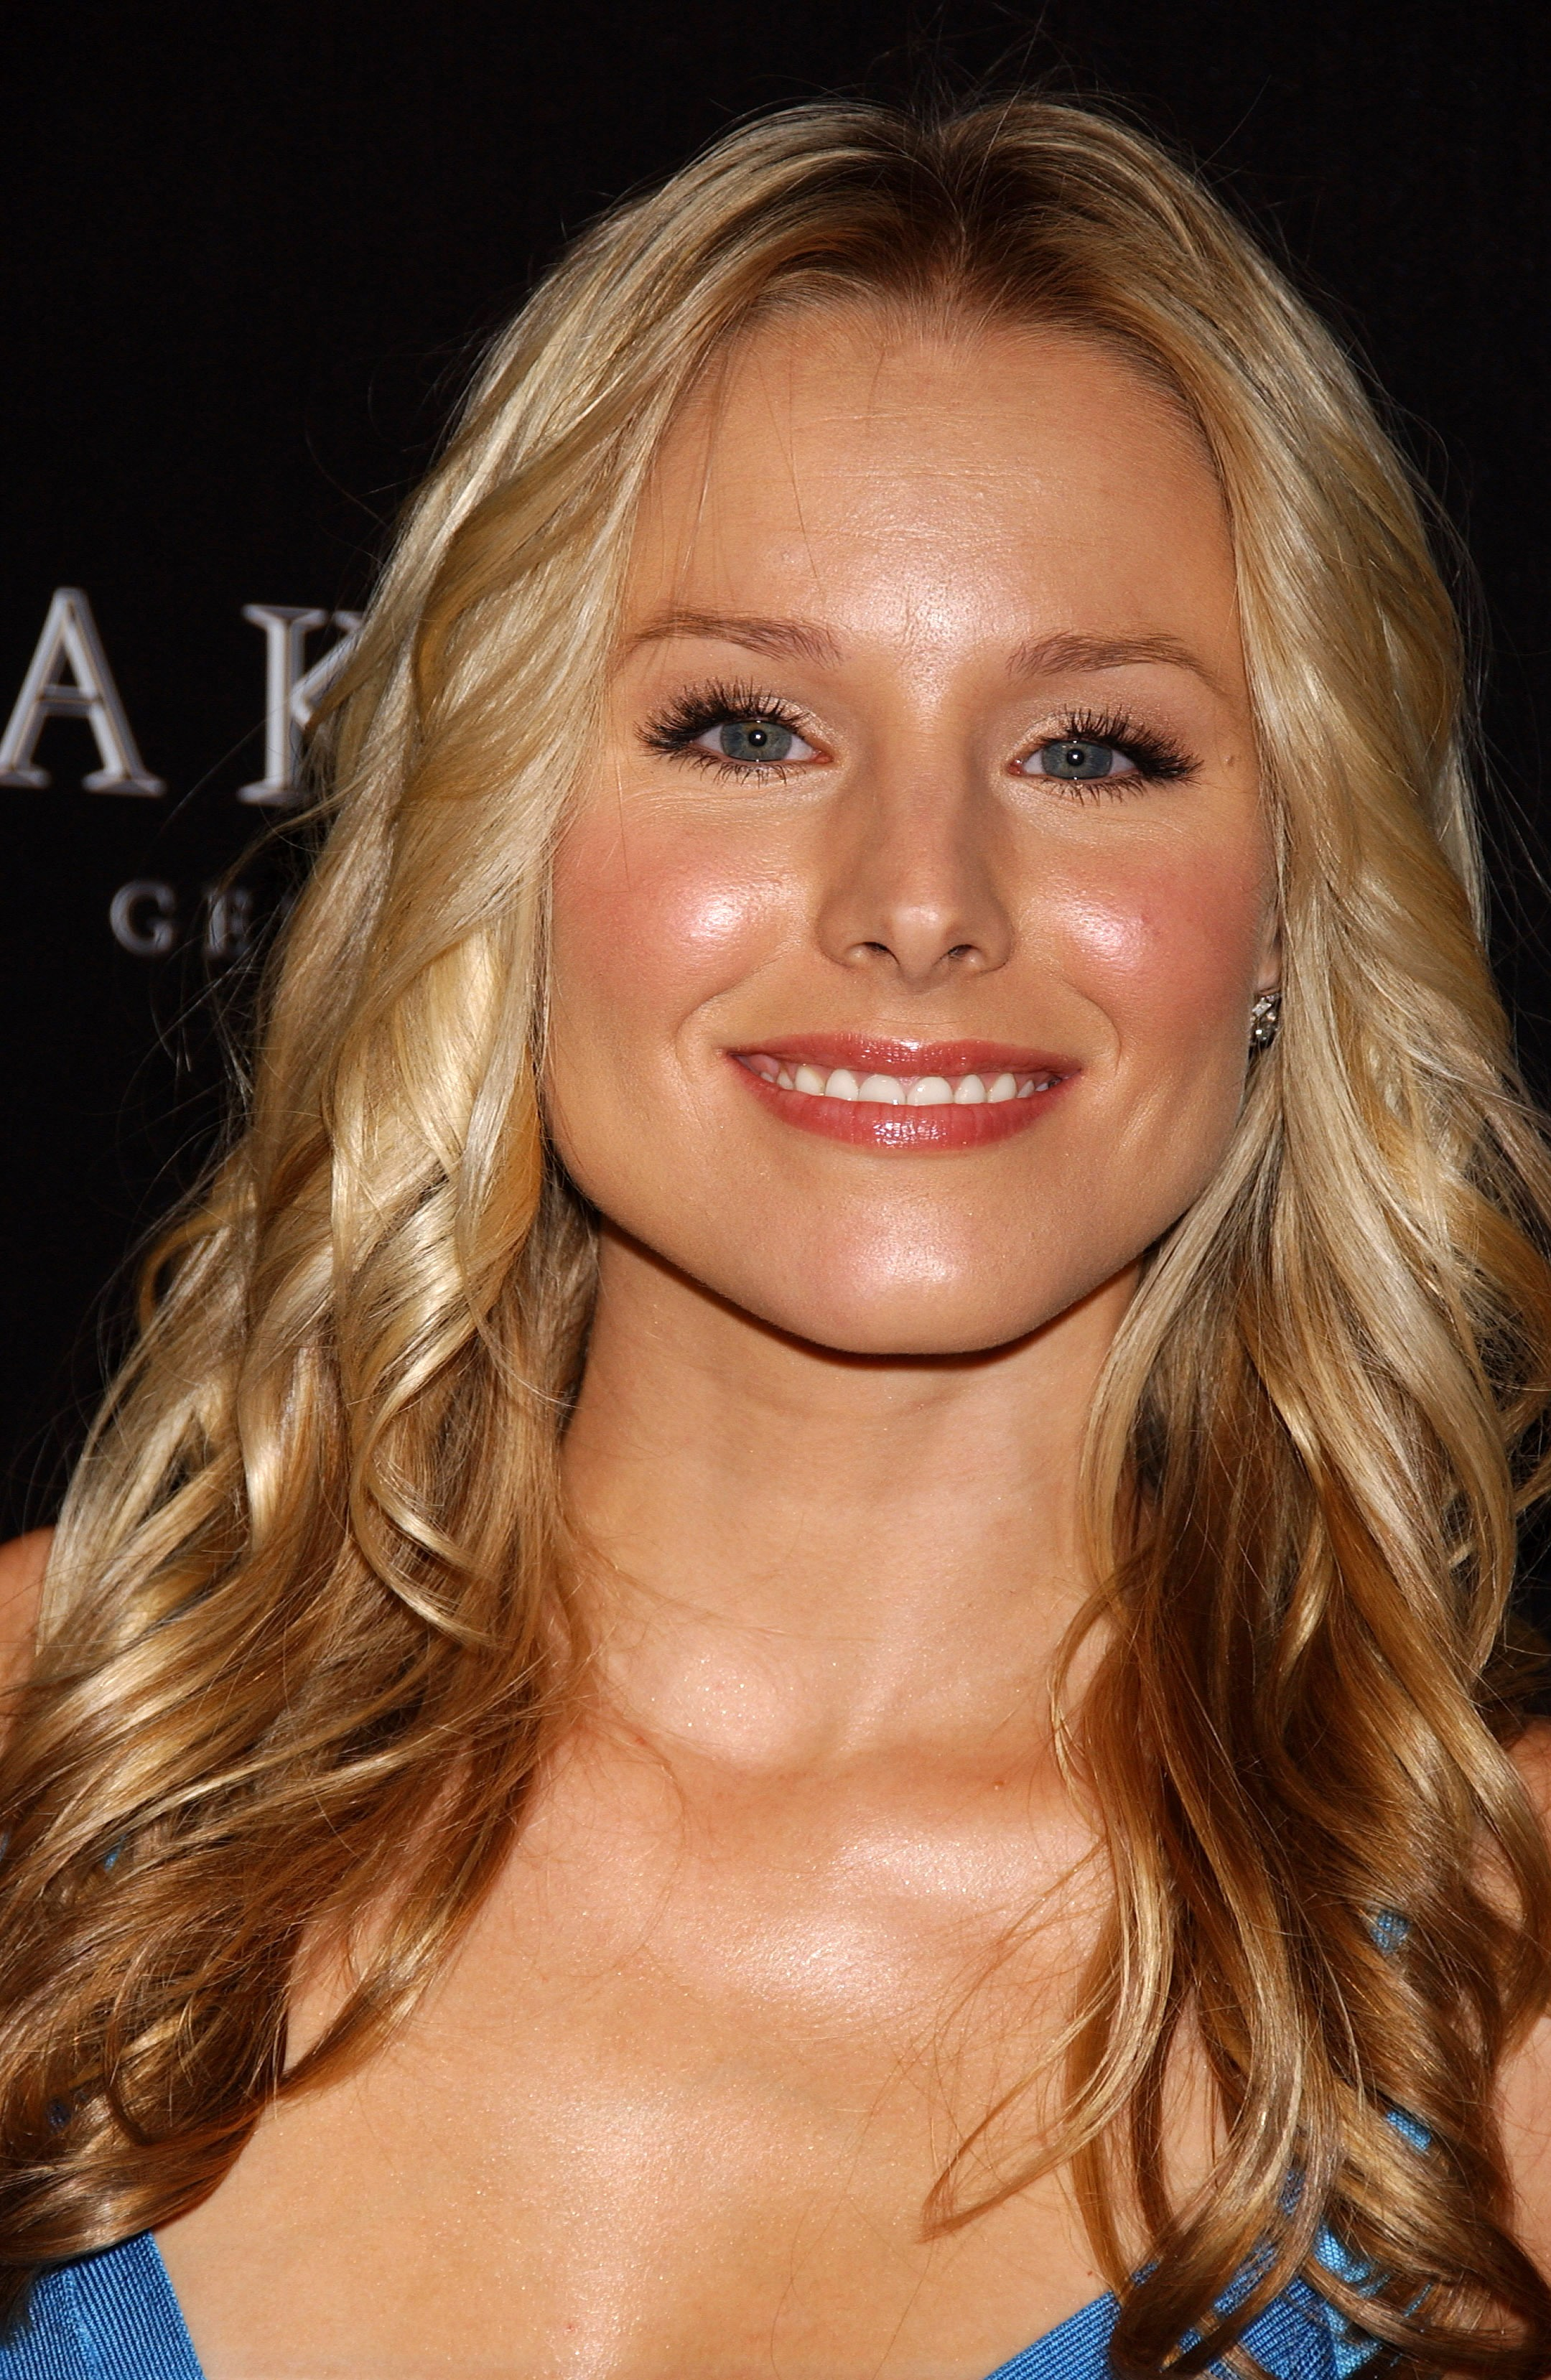 77196_Kristen_Bell_-_Avakian_Beverly_Hills_Boutique_Celebration_CU_ISA_05_122_743lo.jpg